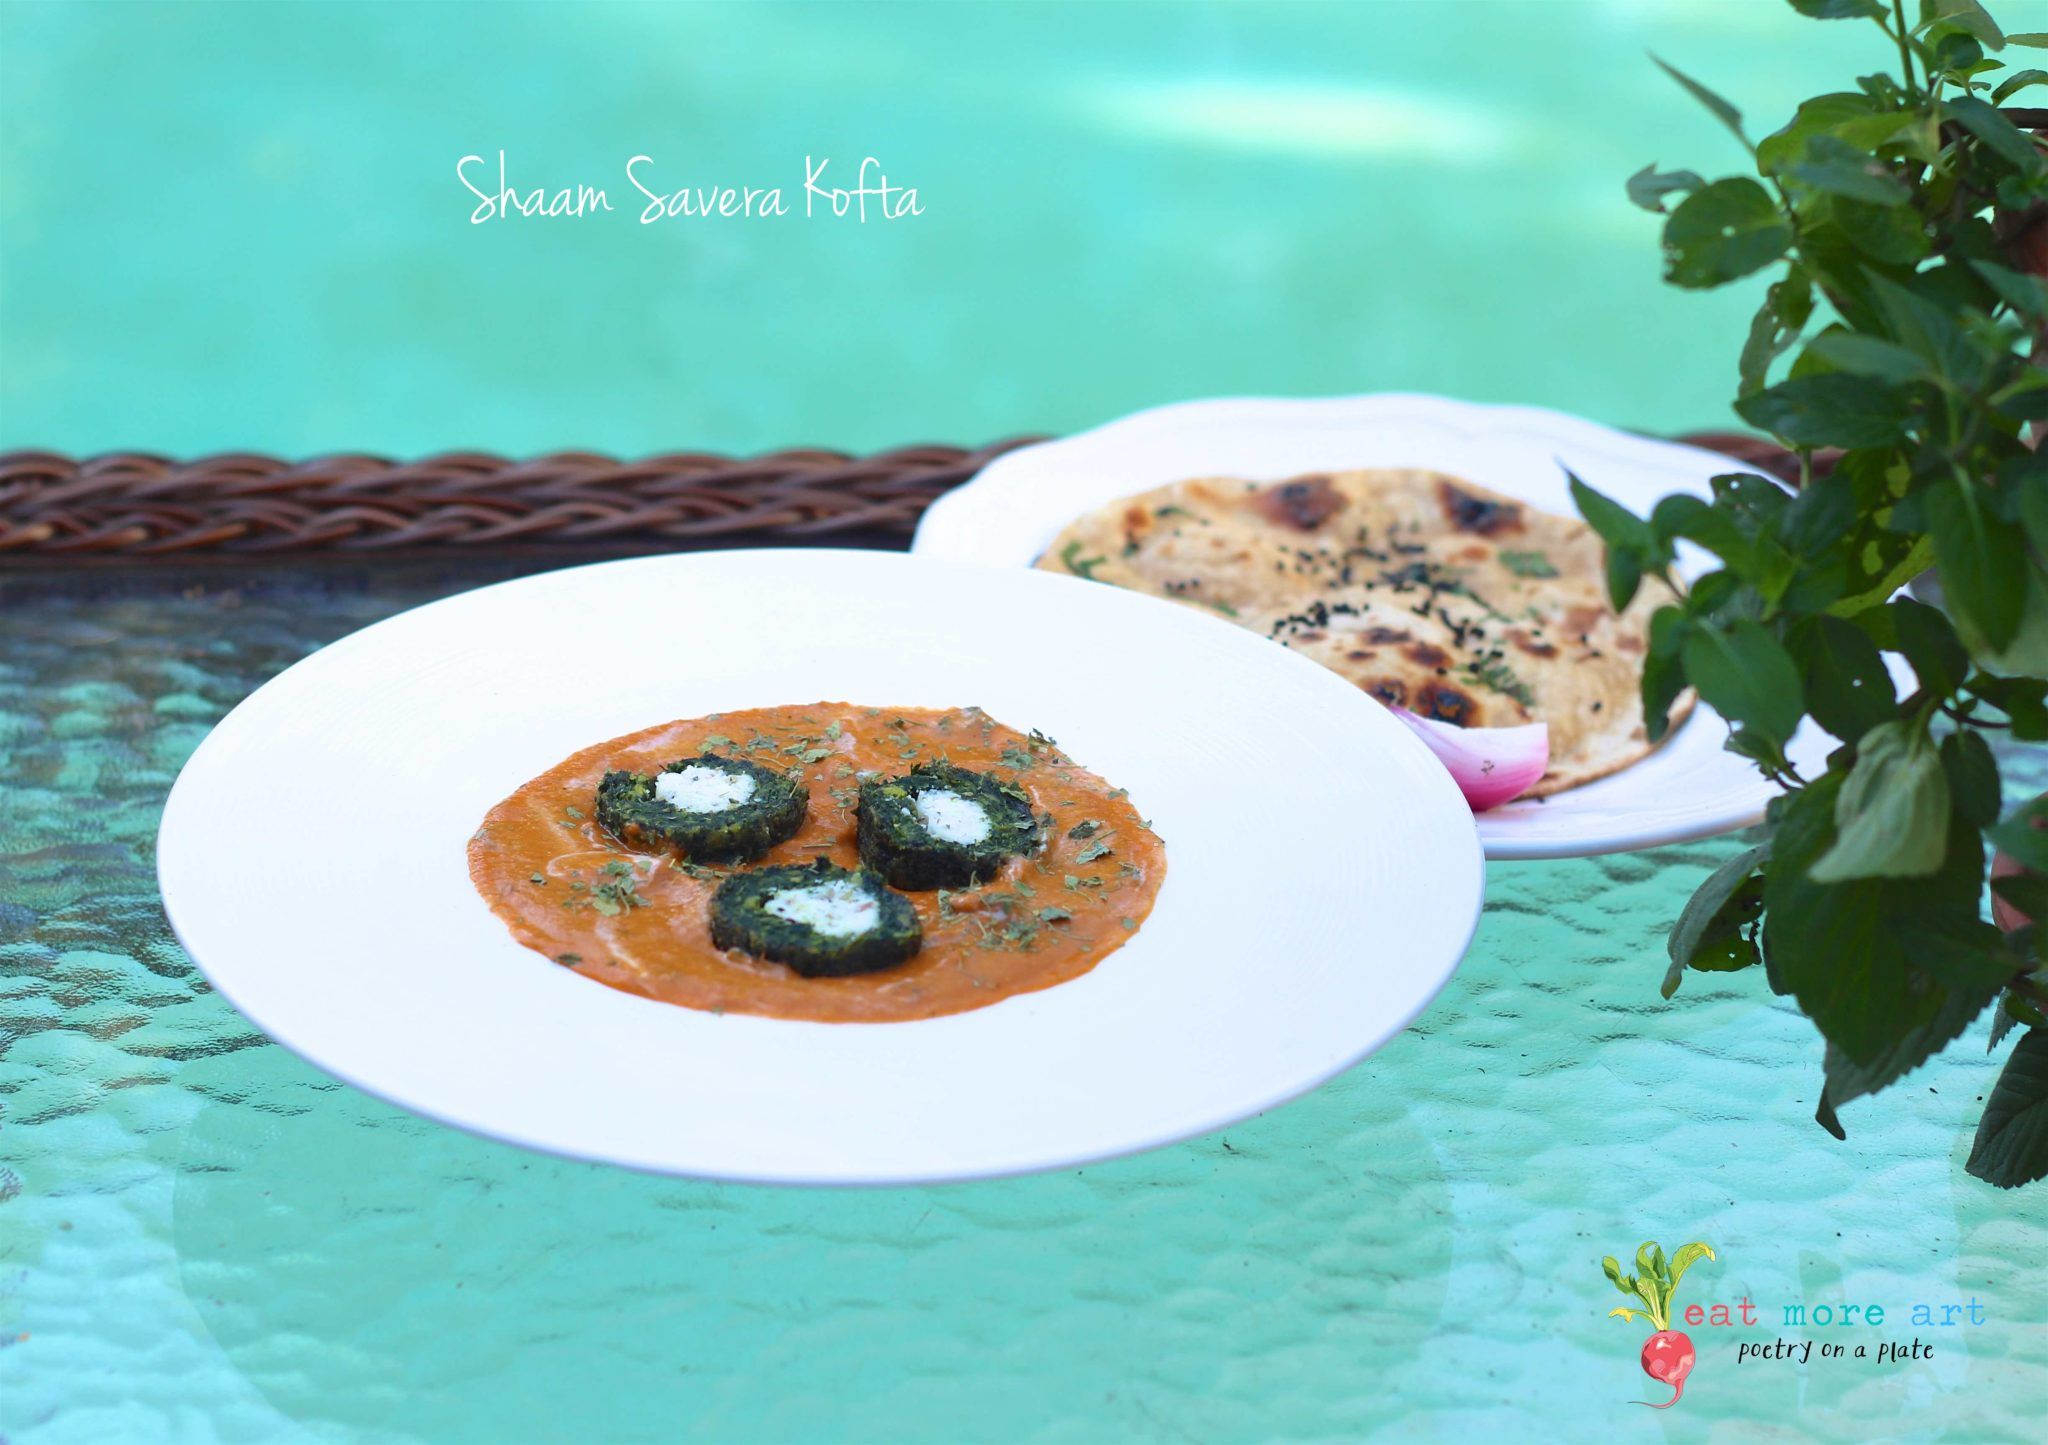 A plate of green spinach kofta with cut in half with white panner in center served with a side of roti with teal color pool background